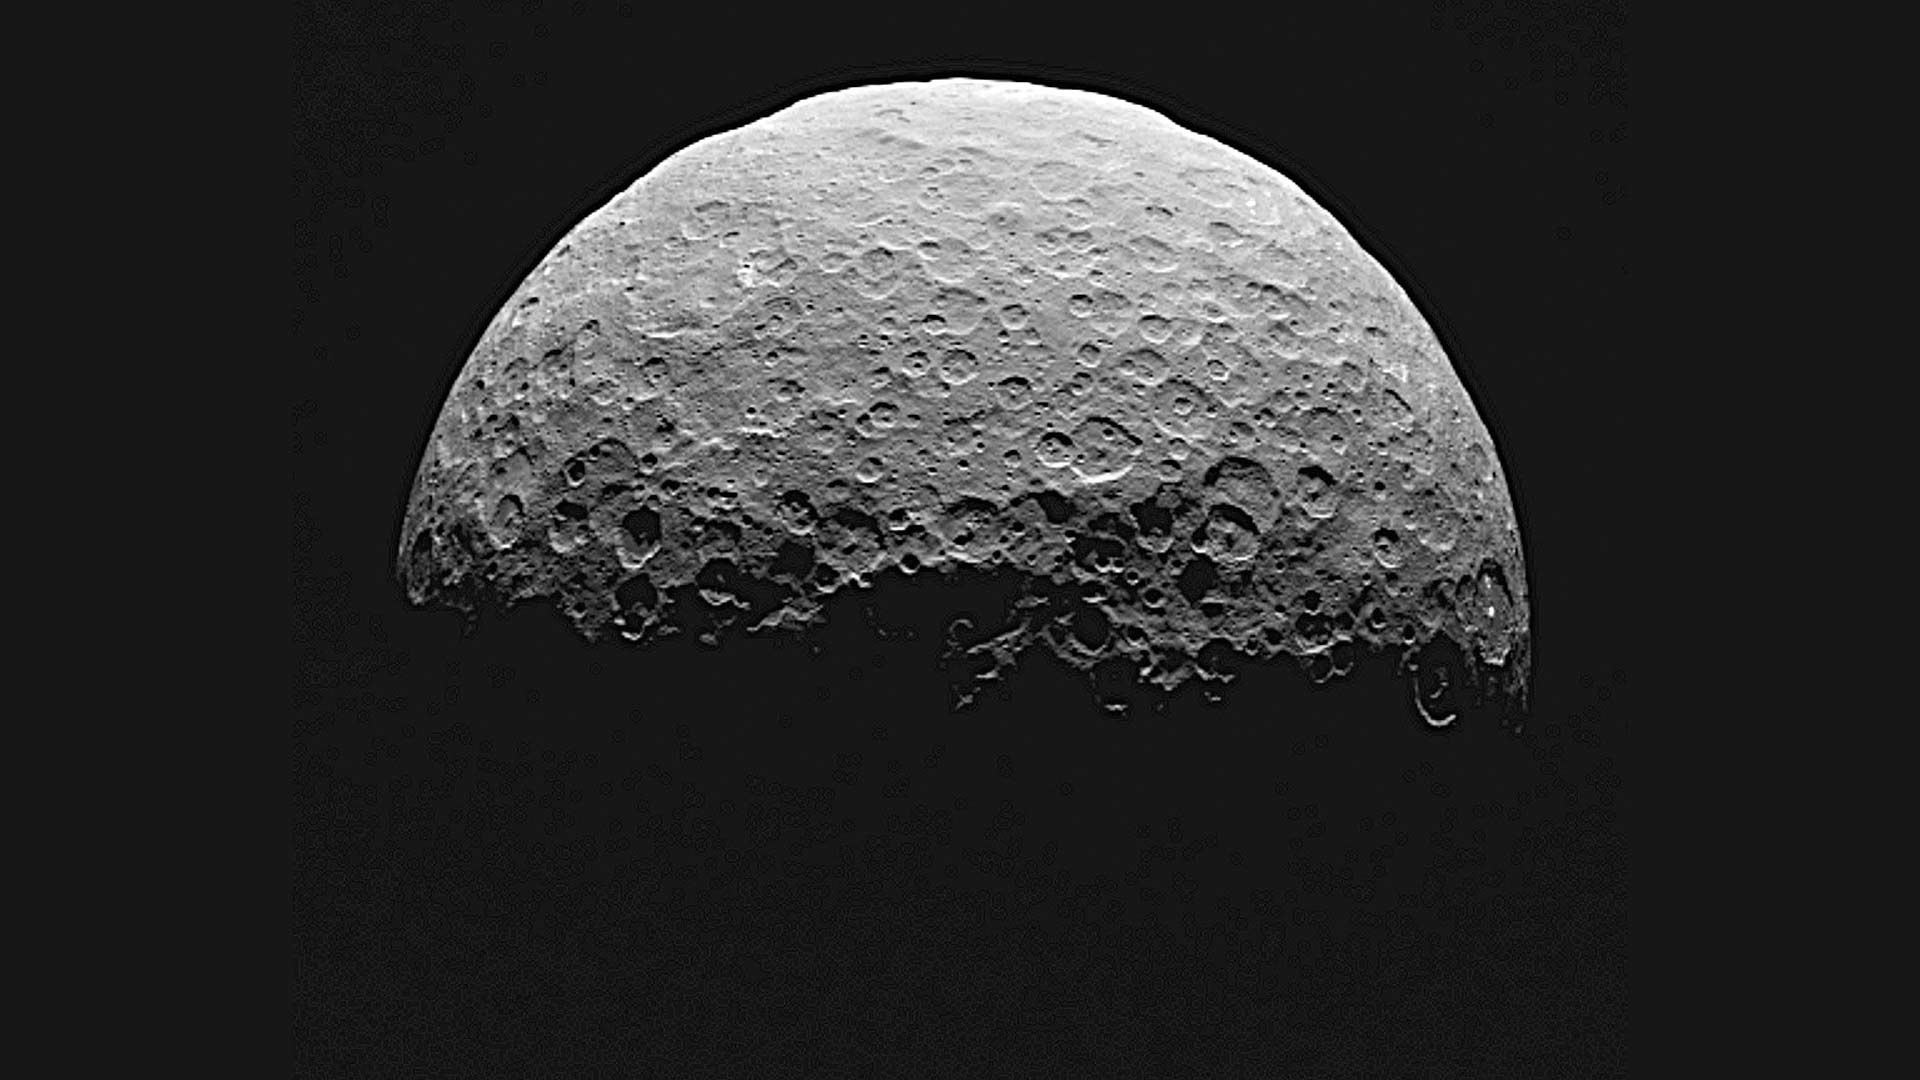 Scientists think material from ice volcanoes once flowed across some of Ceres' now-cratered surface. Image from NASA's Dawn spacecraft.